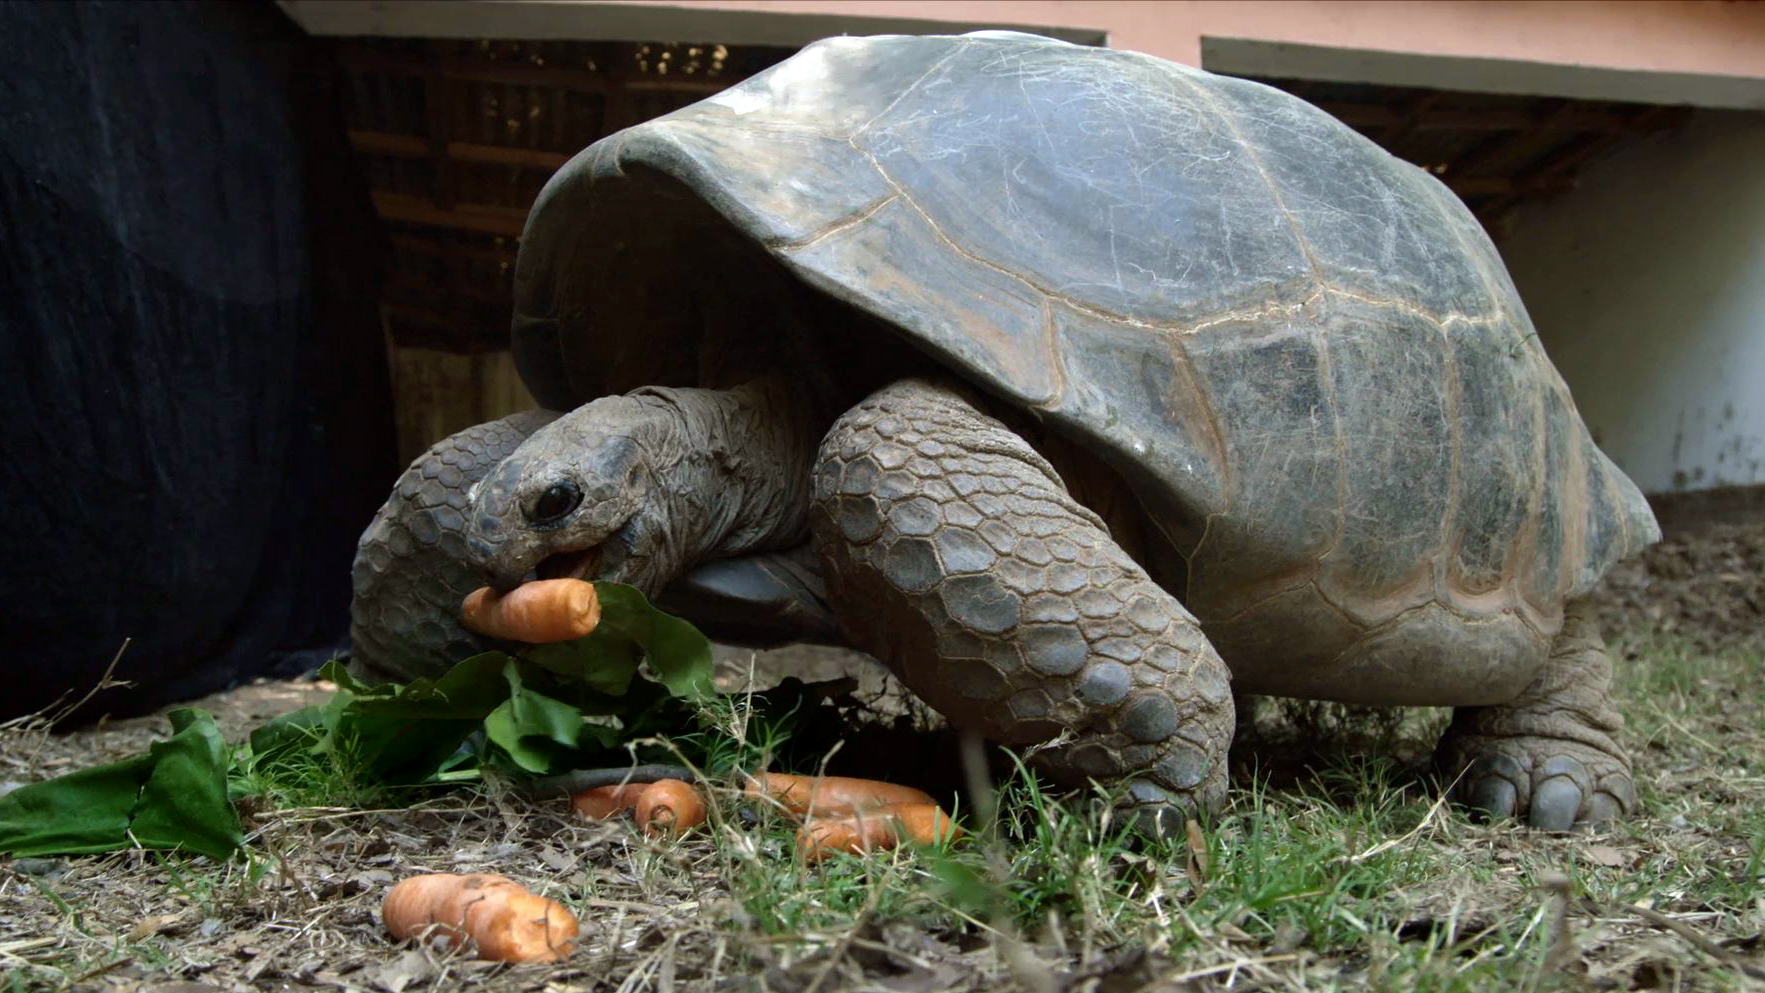 Creature Clip: Aldabara Giant Tortoise - 2:24 - Aldabara giant tortoises can grow to be over 500 pounds and live to be over 100 years old.